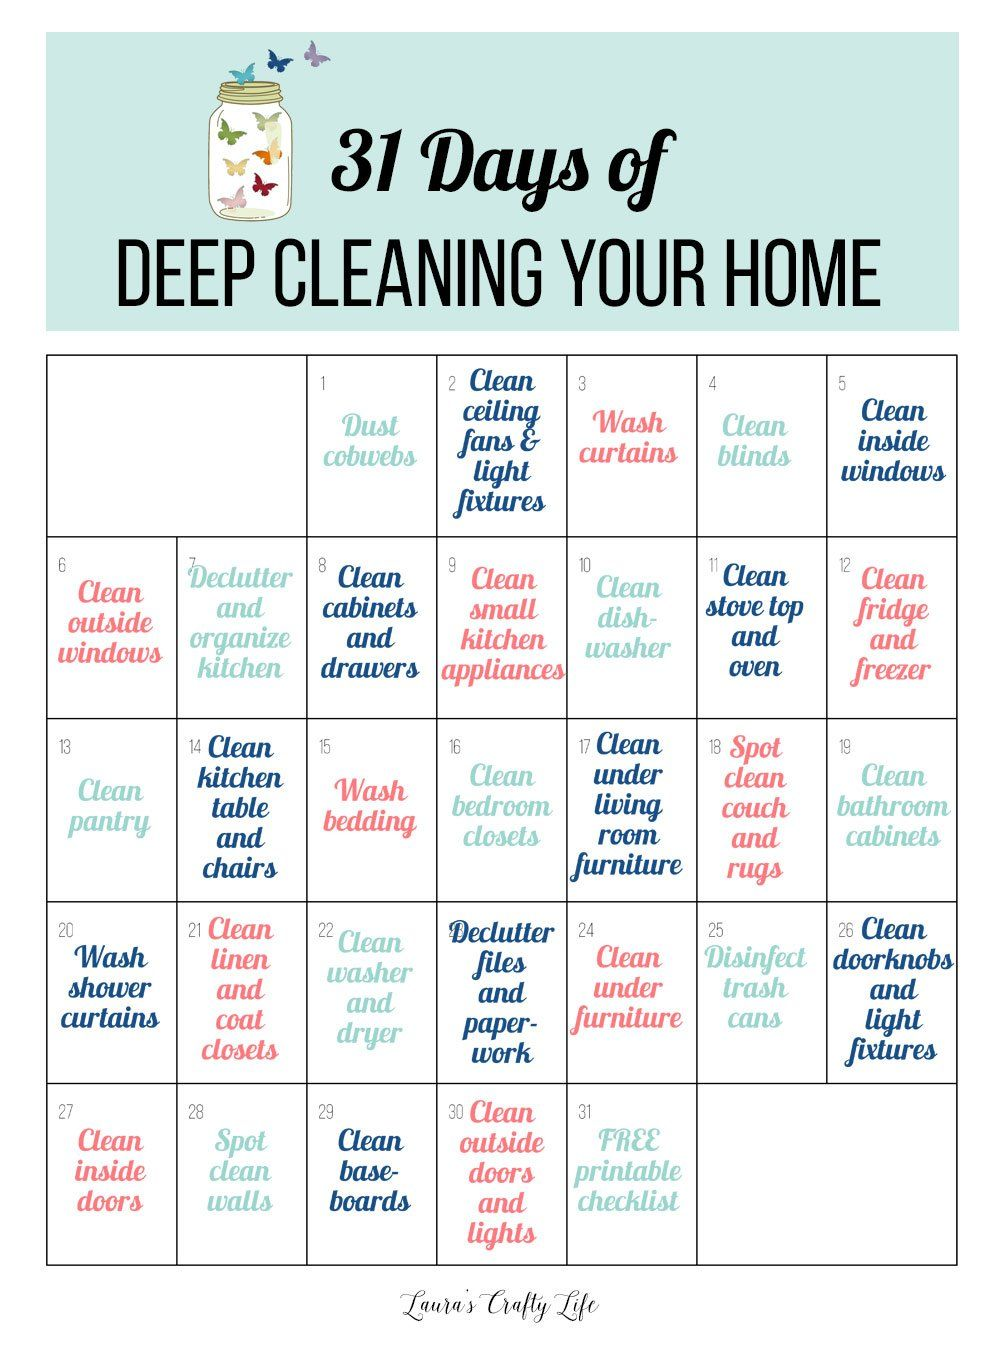 31 Days of Deep Cleaning Your Home – Laura's Crafty Life